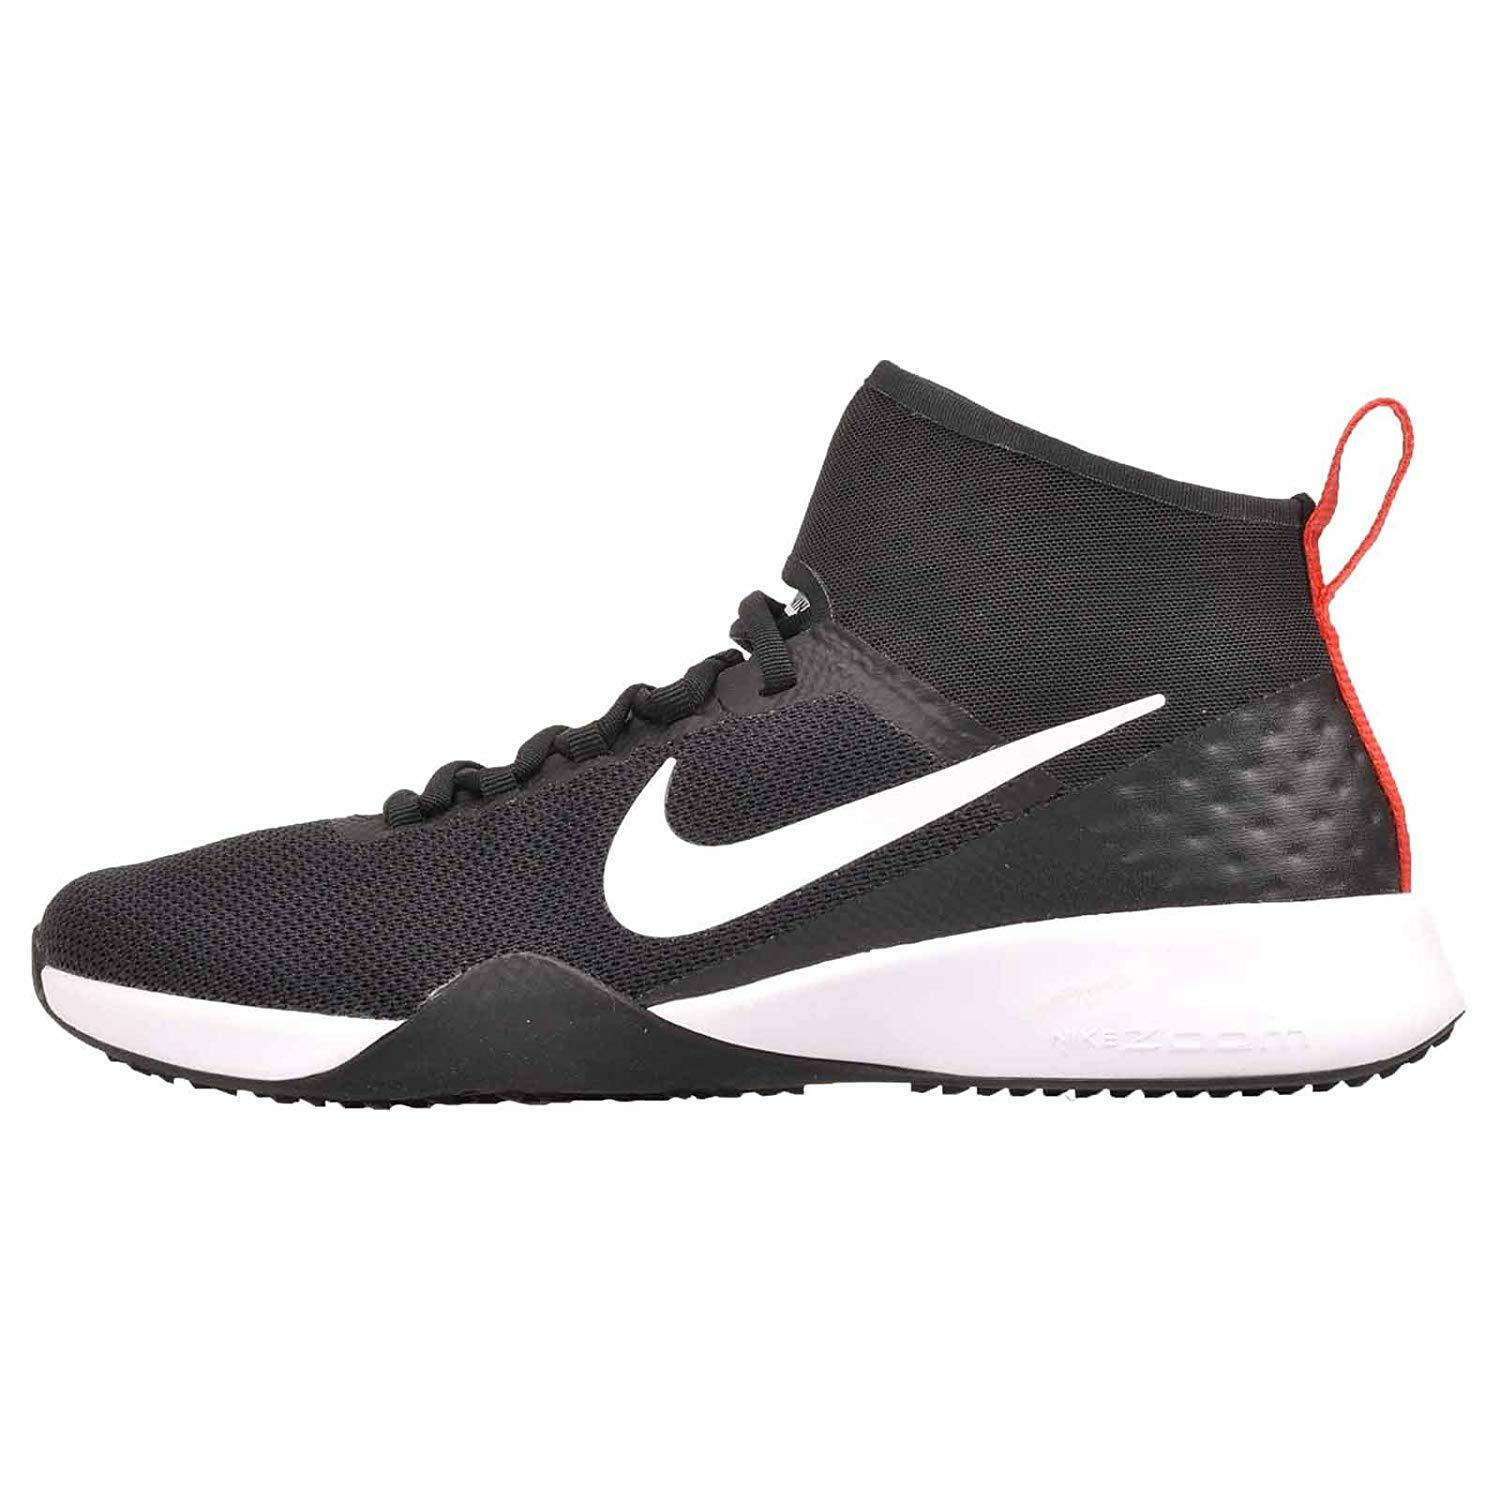 W W W NIKE Women's Air ZM Strong 2 Rumble AO5074 001 Size 7 Retail  120 NEW ae6d92